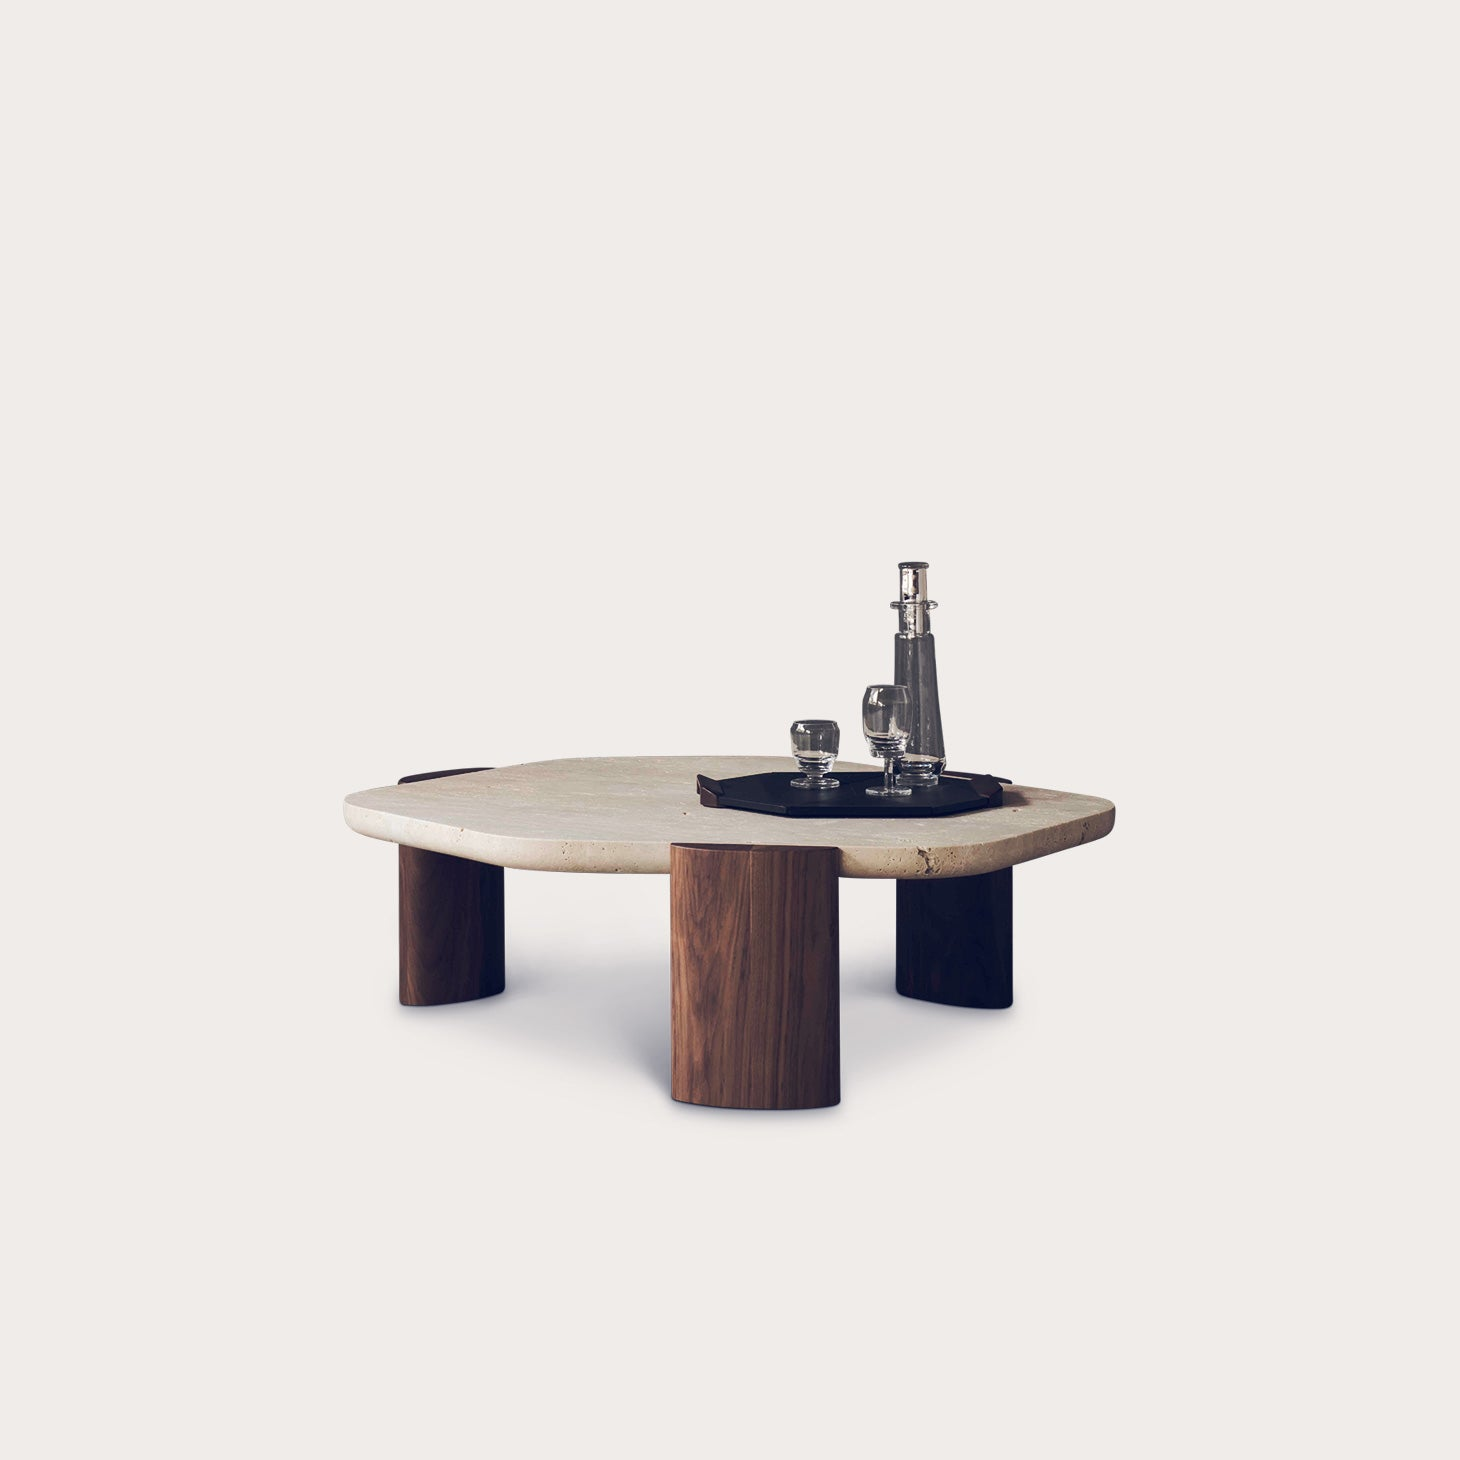 LOB Low Table Tables Christophe Delcourt Designer Furniture Sku: 765-230-10020